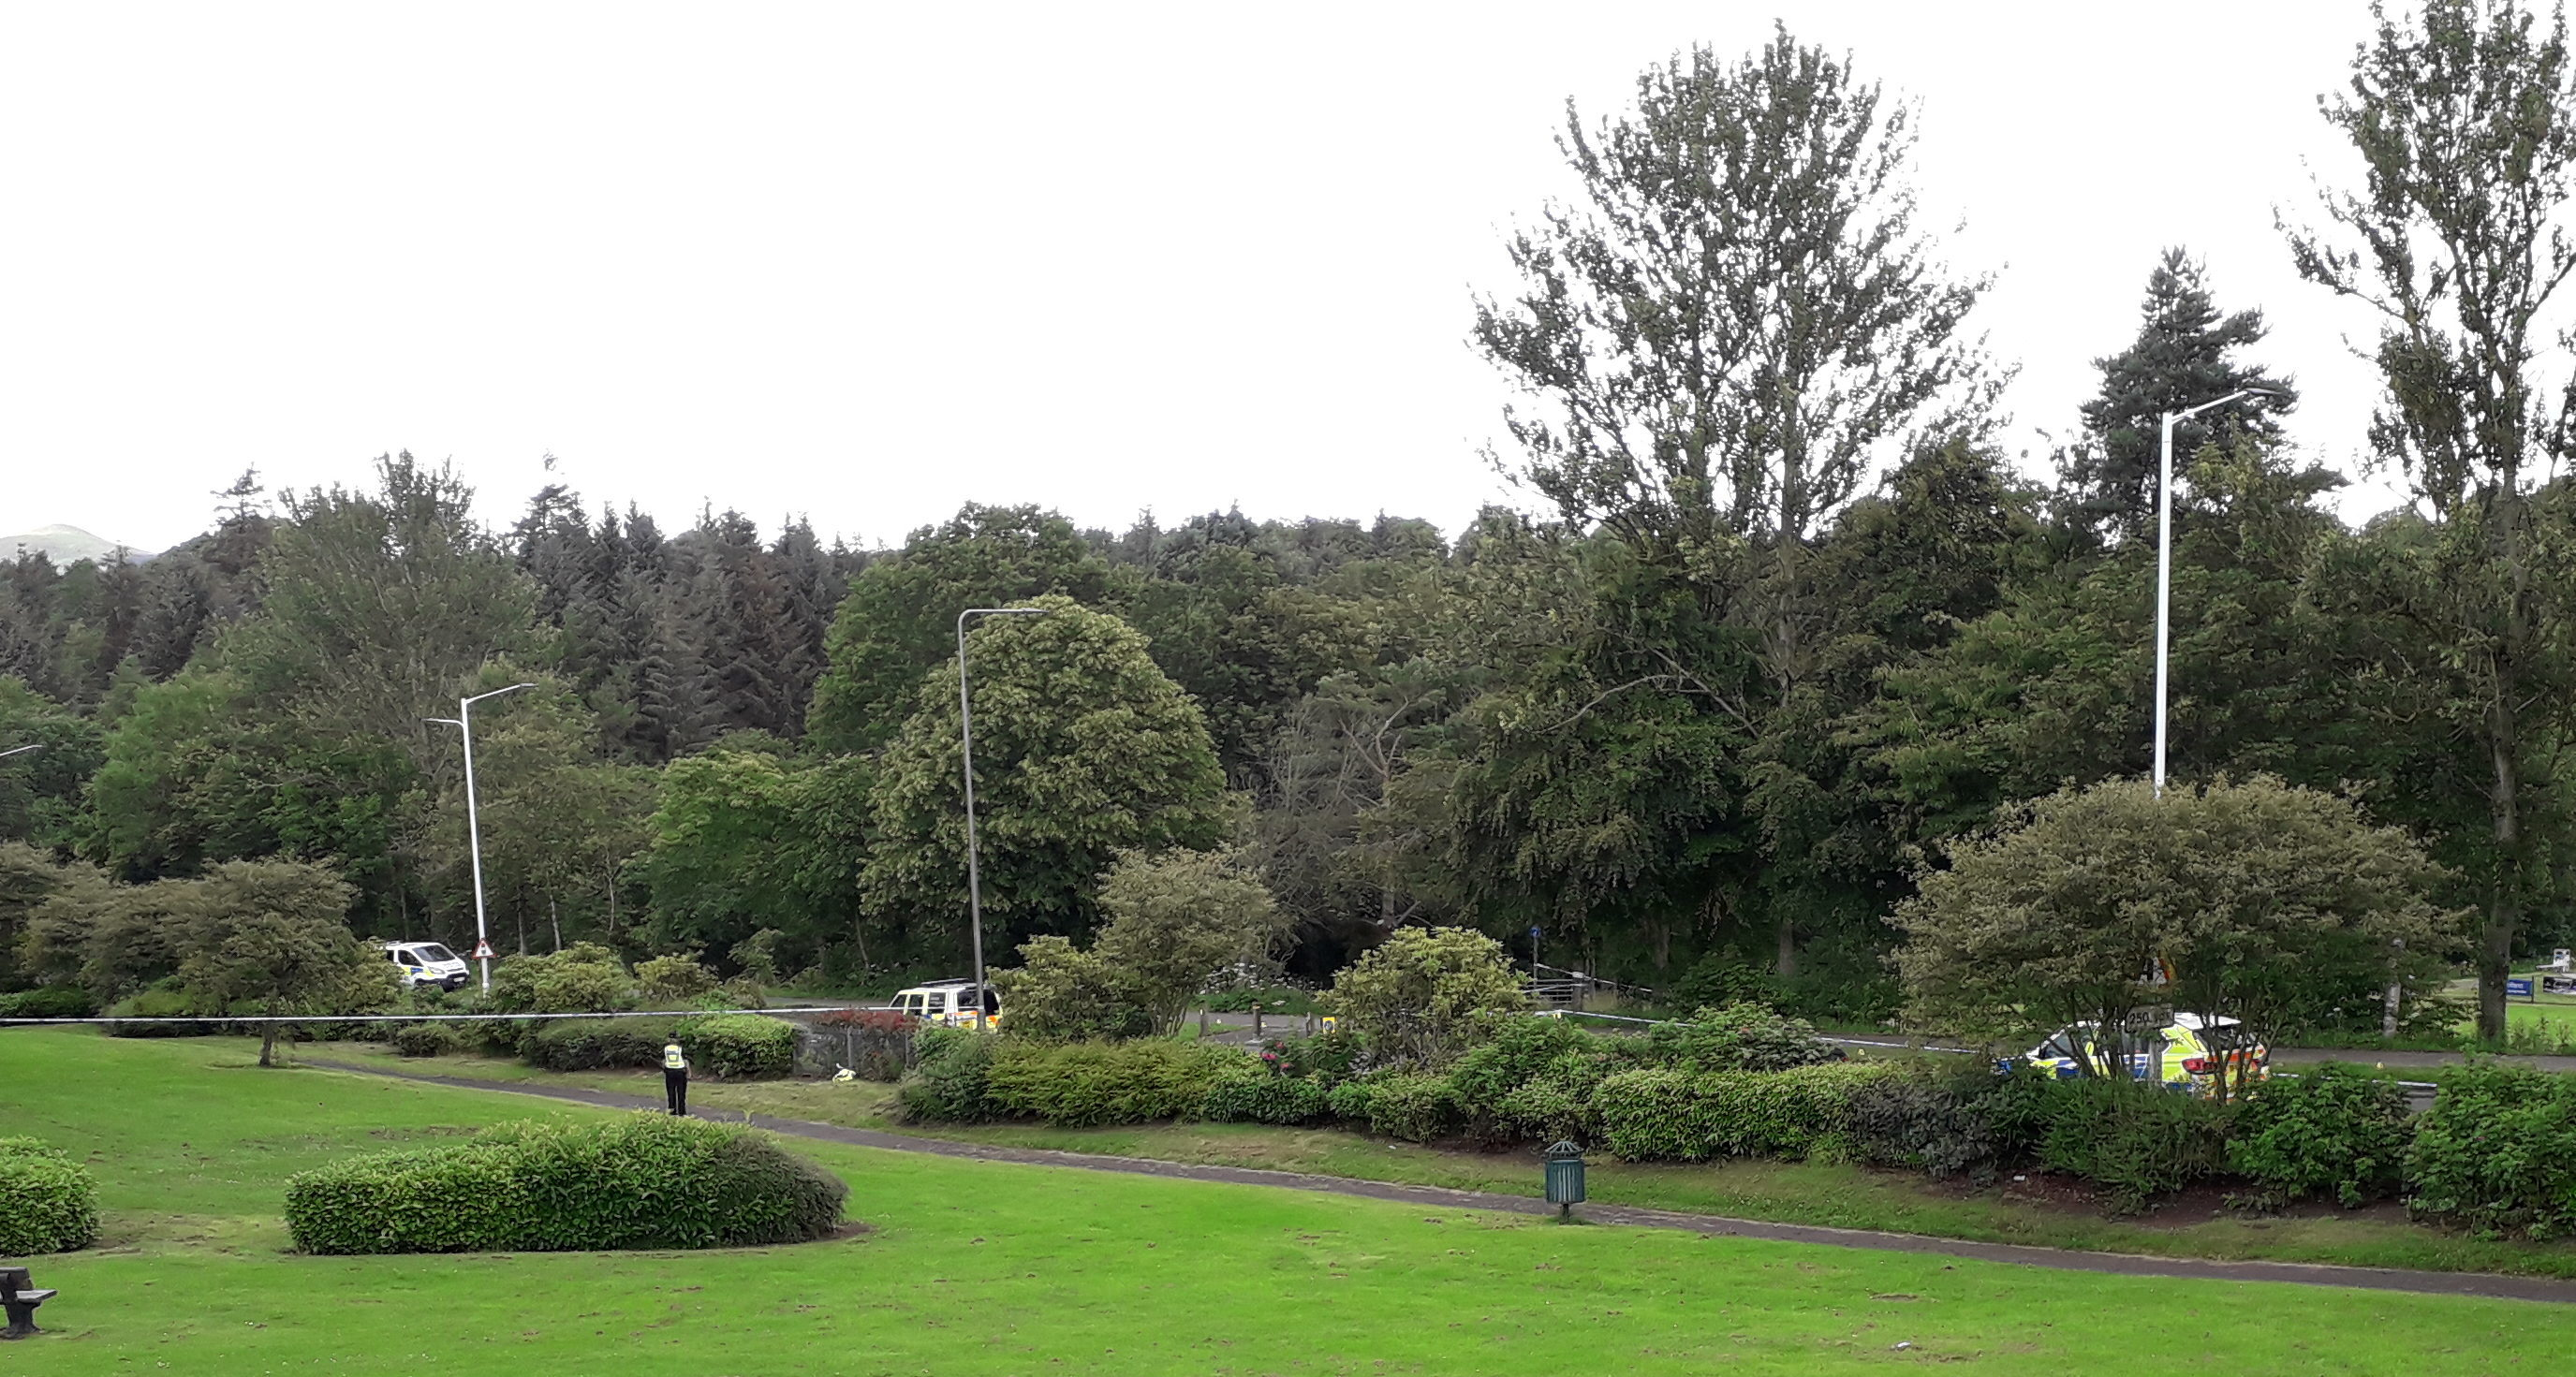 Parts of Riverside Park were cordoned off after the accident on Leslie Road, Glenrothes.